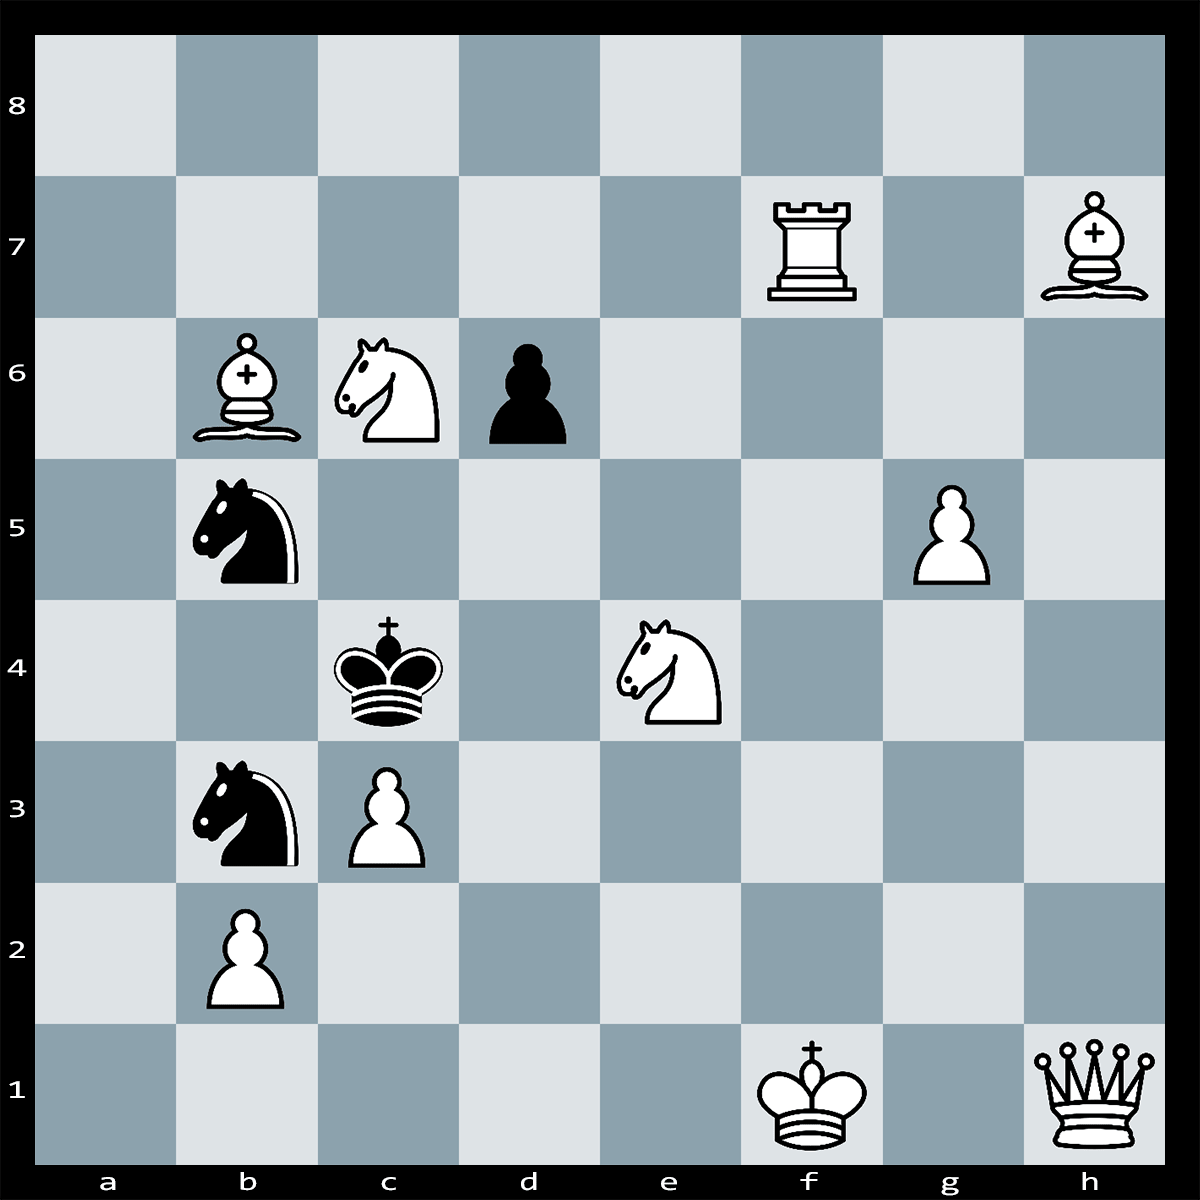 Mate in Two Moves, White to Play | Chess Puzzle #179